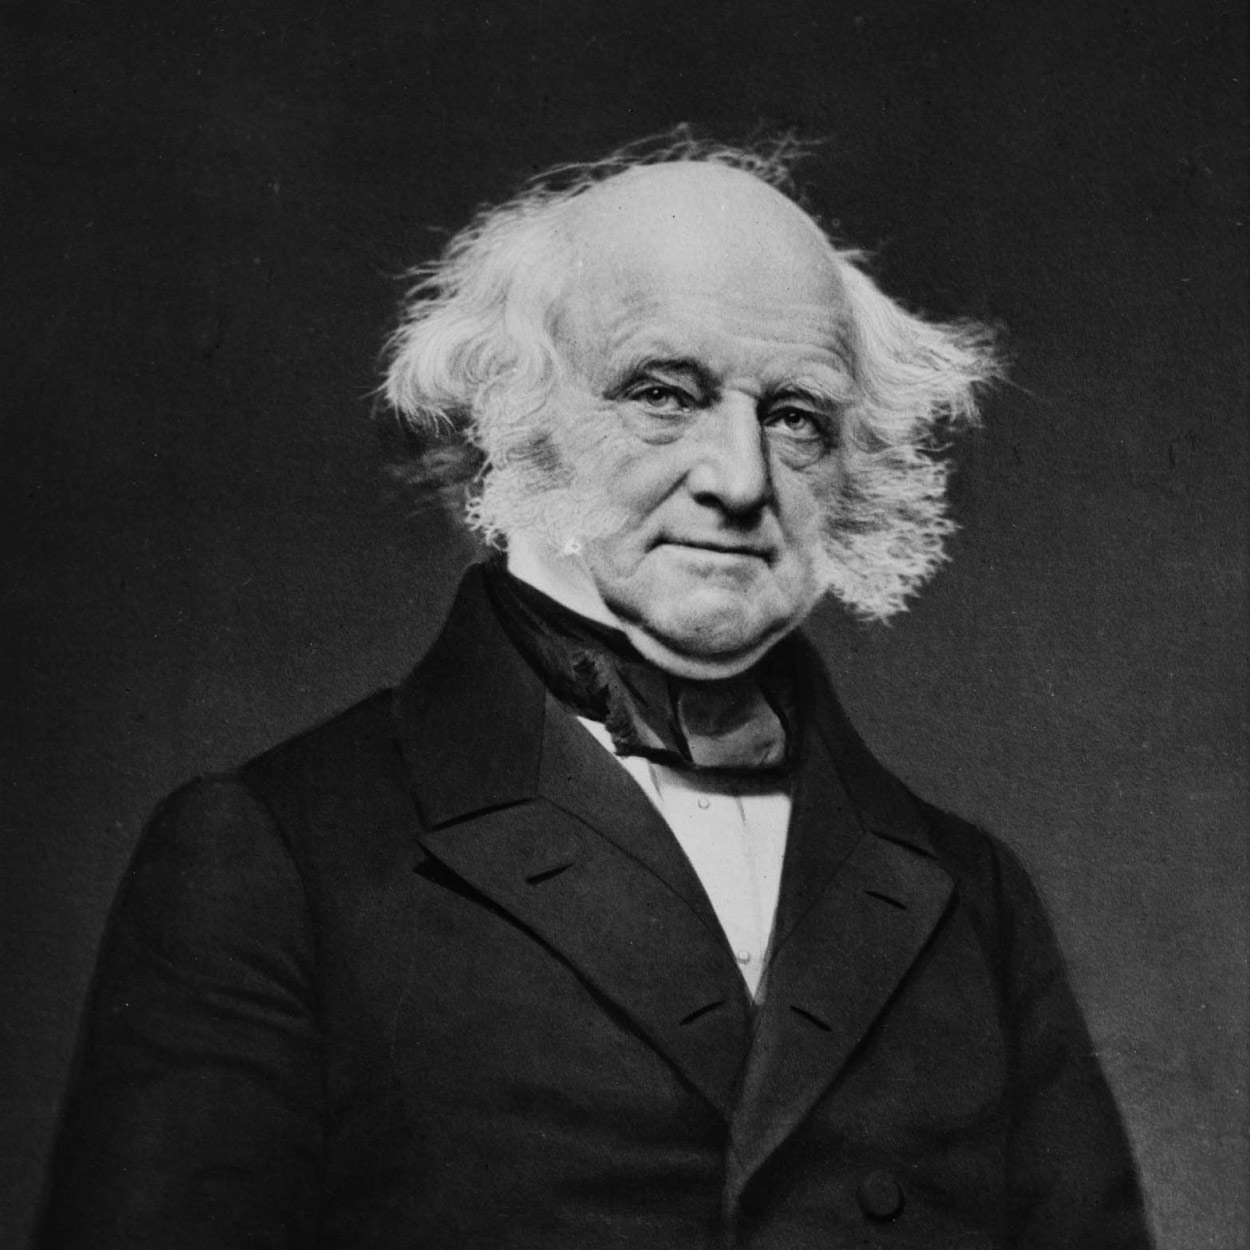 Portrait of Martin Van Buren, the 8th President of the United States